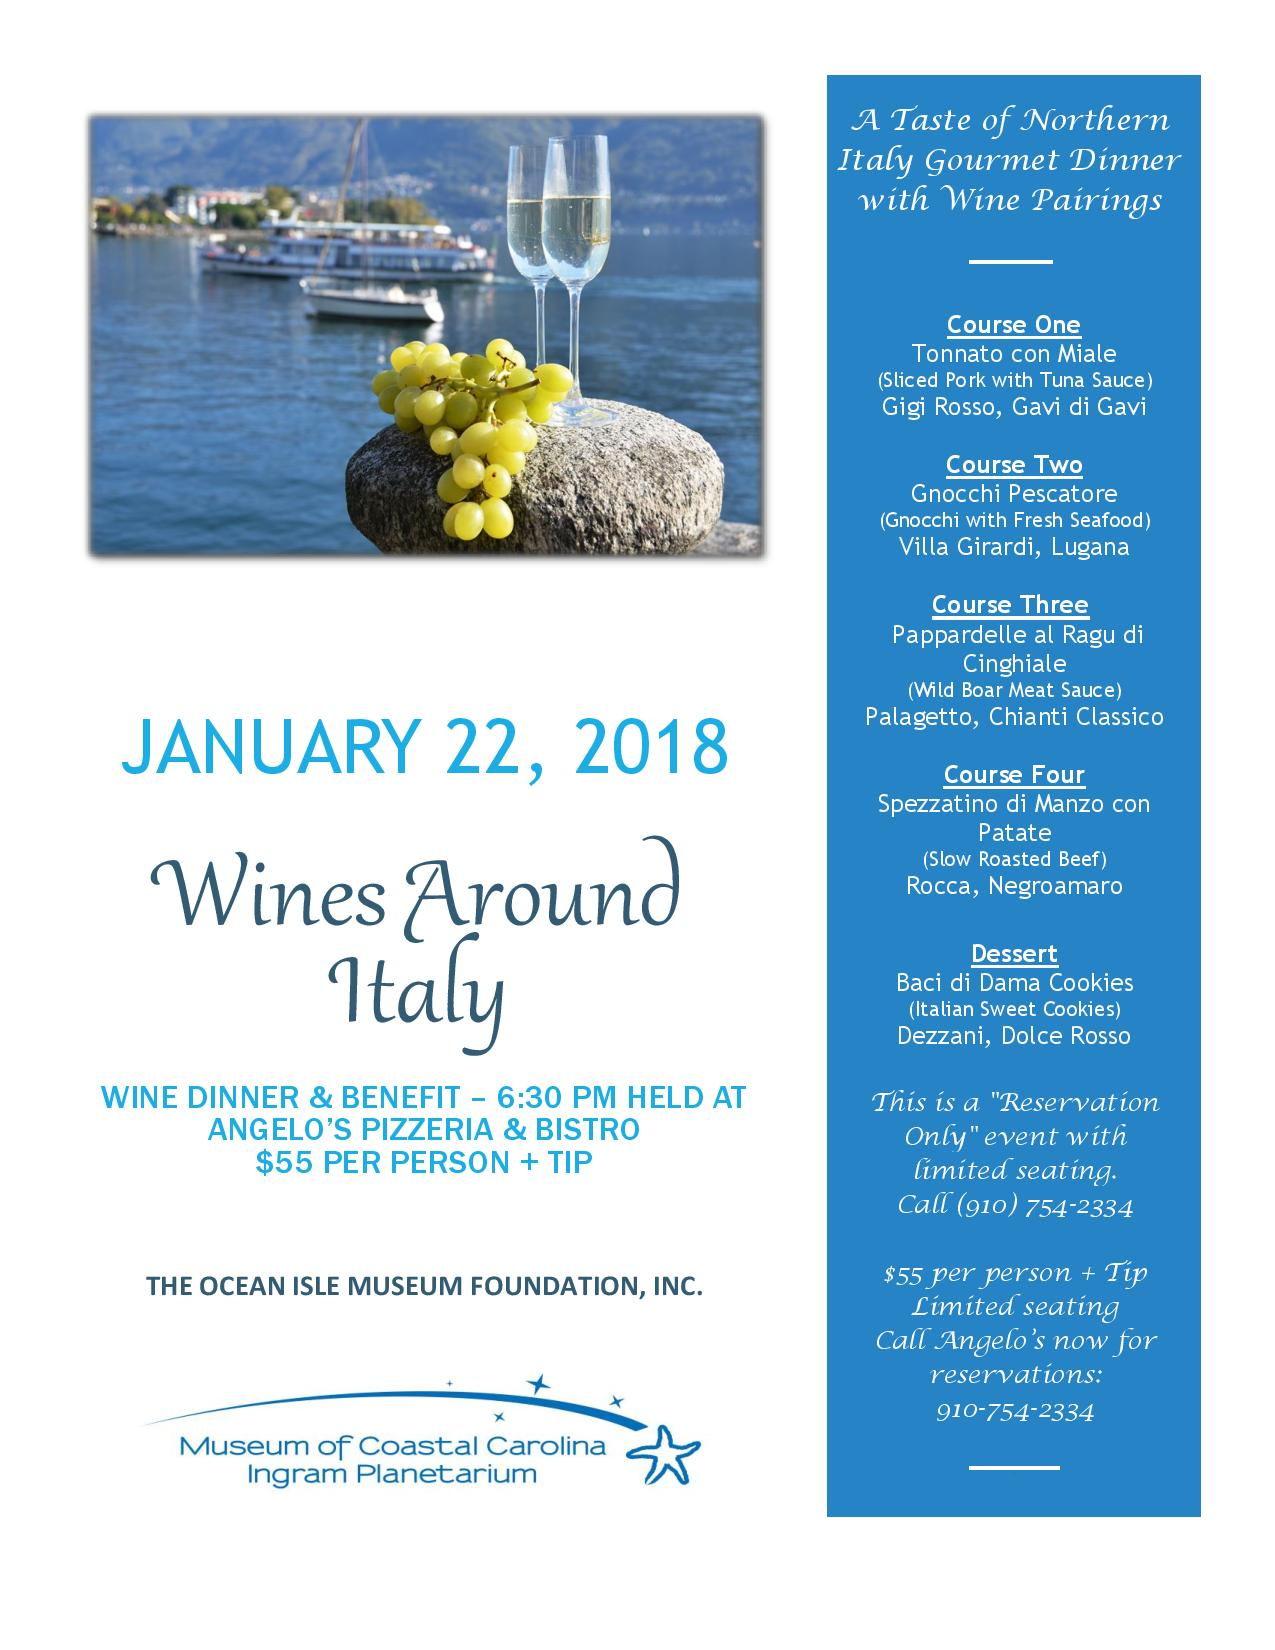 Wines around Italy - Dinner and Benefit at Angelo's Bistro